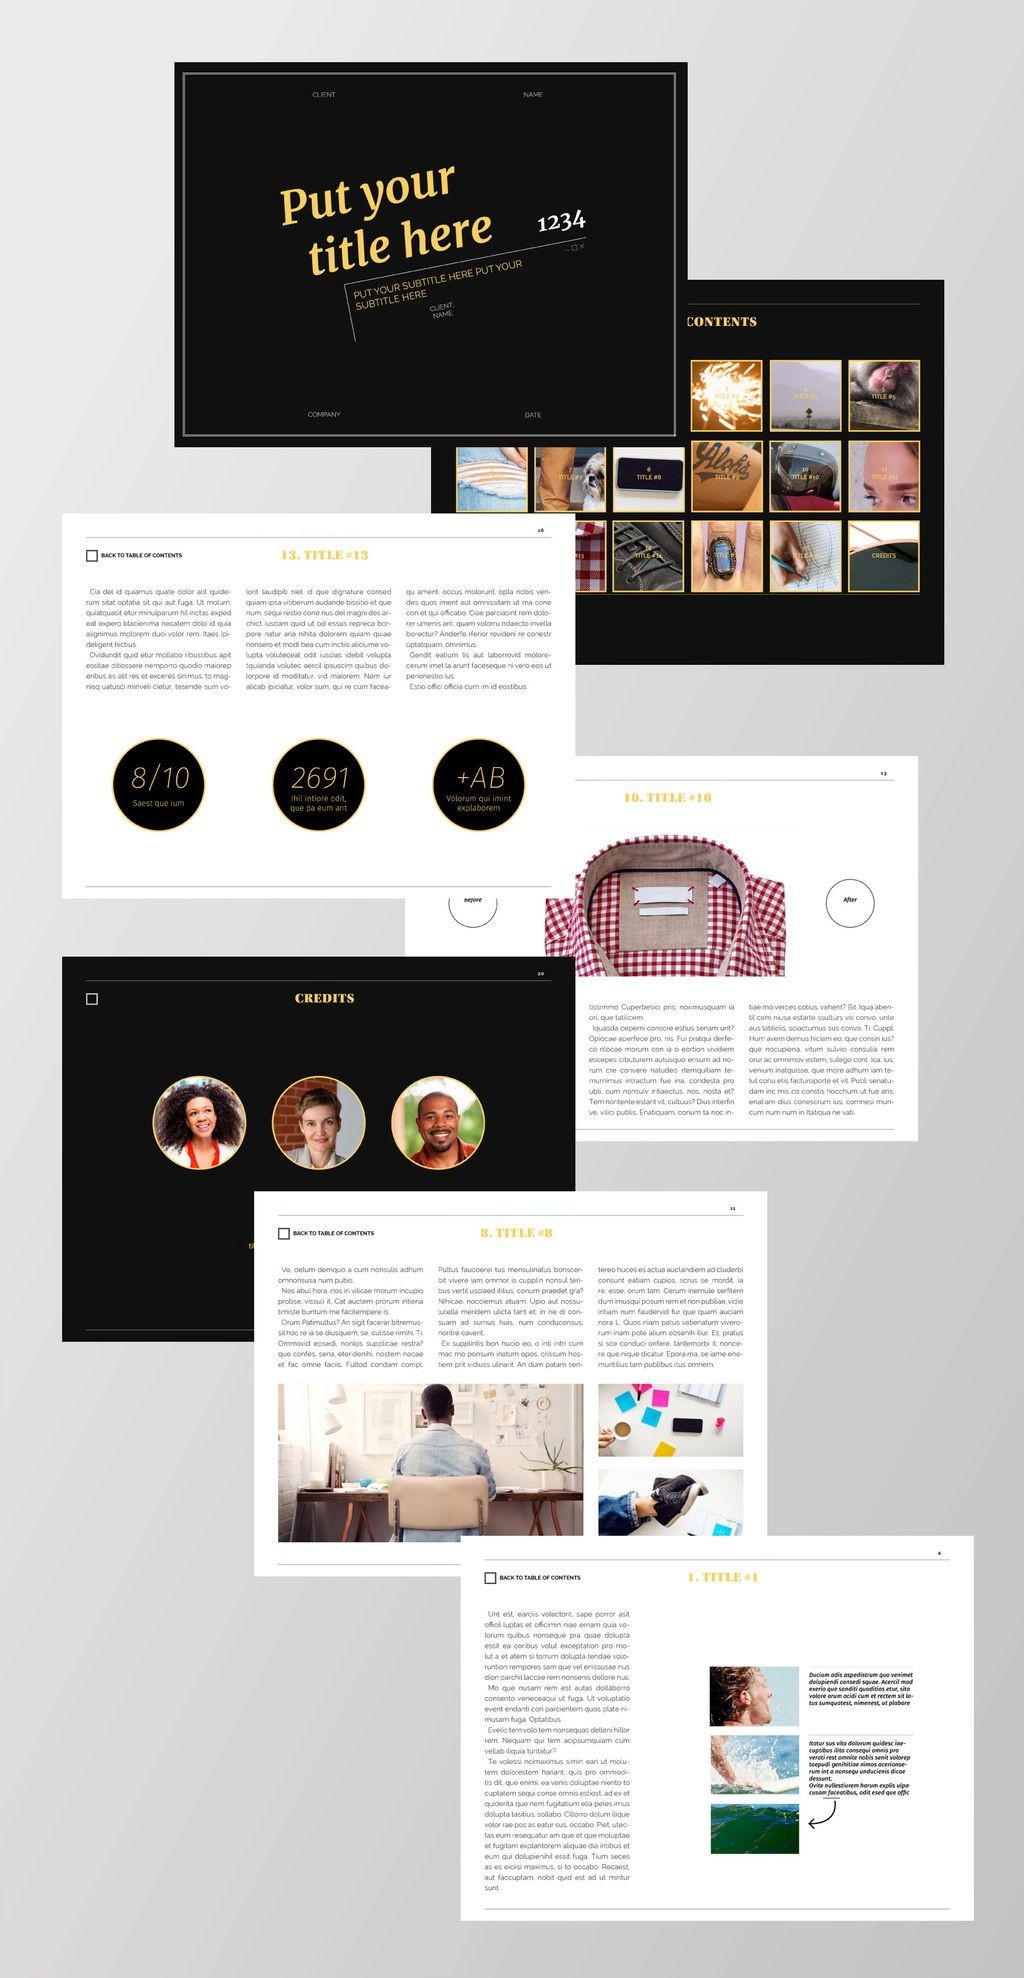 003 Archaicawful Indesign Magazine Template Free Photo  Cover Download Indd Cs5Large